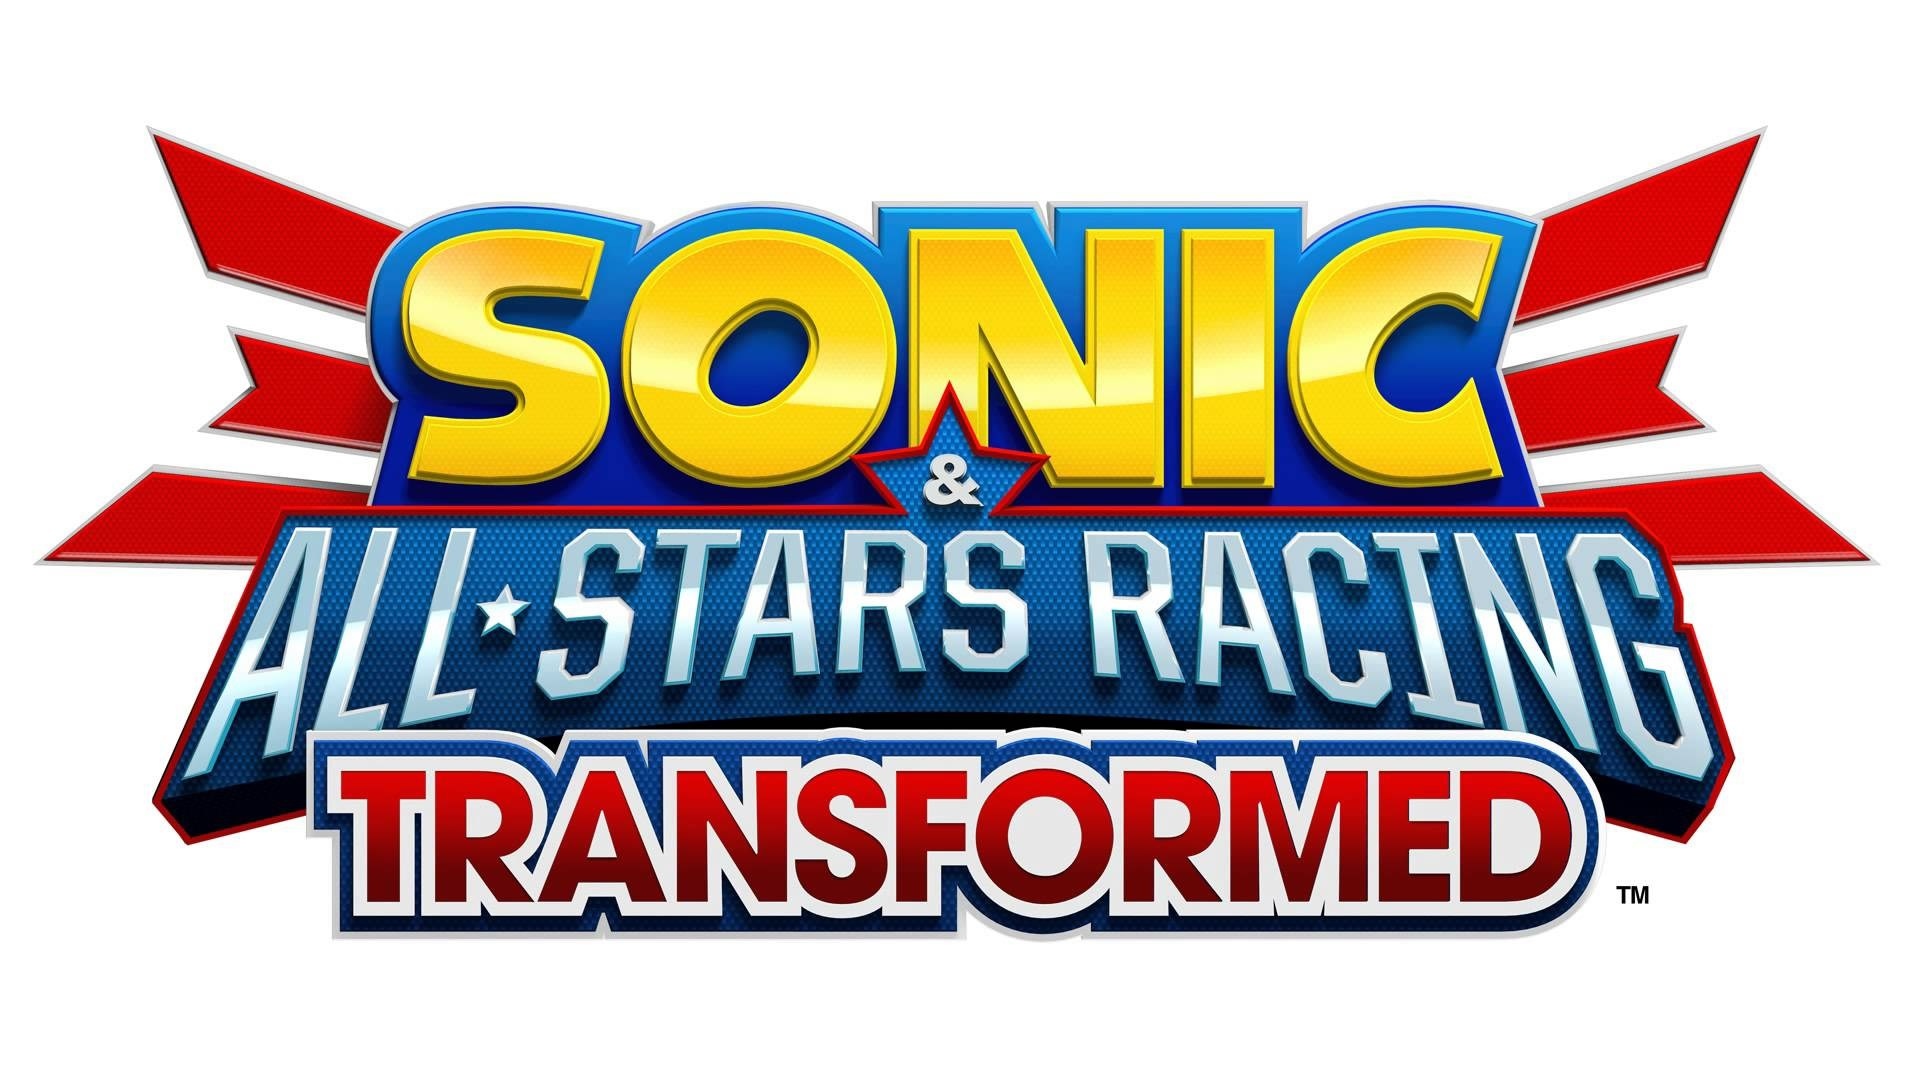 1920x1080-Cool-sonic-all-stars-racing-transformed-wallpaper-wp360763